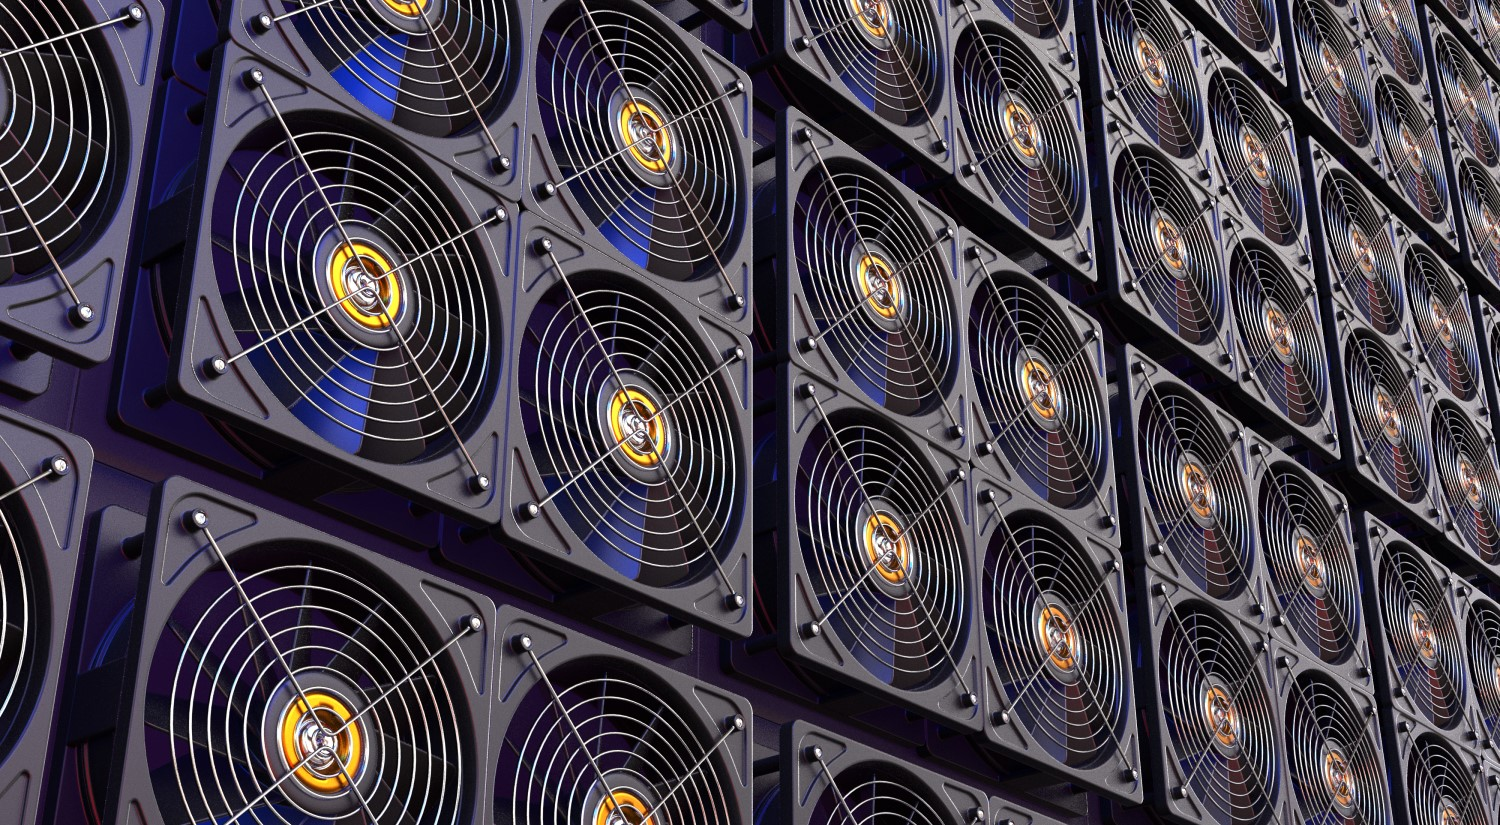 Inner Mongolia to Shutdown 'Illegal' Bitcoin Miners by October as China Cracks Down on Industry - CryptoUnify Advanced Cryptocurrencies Platform